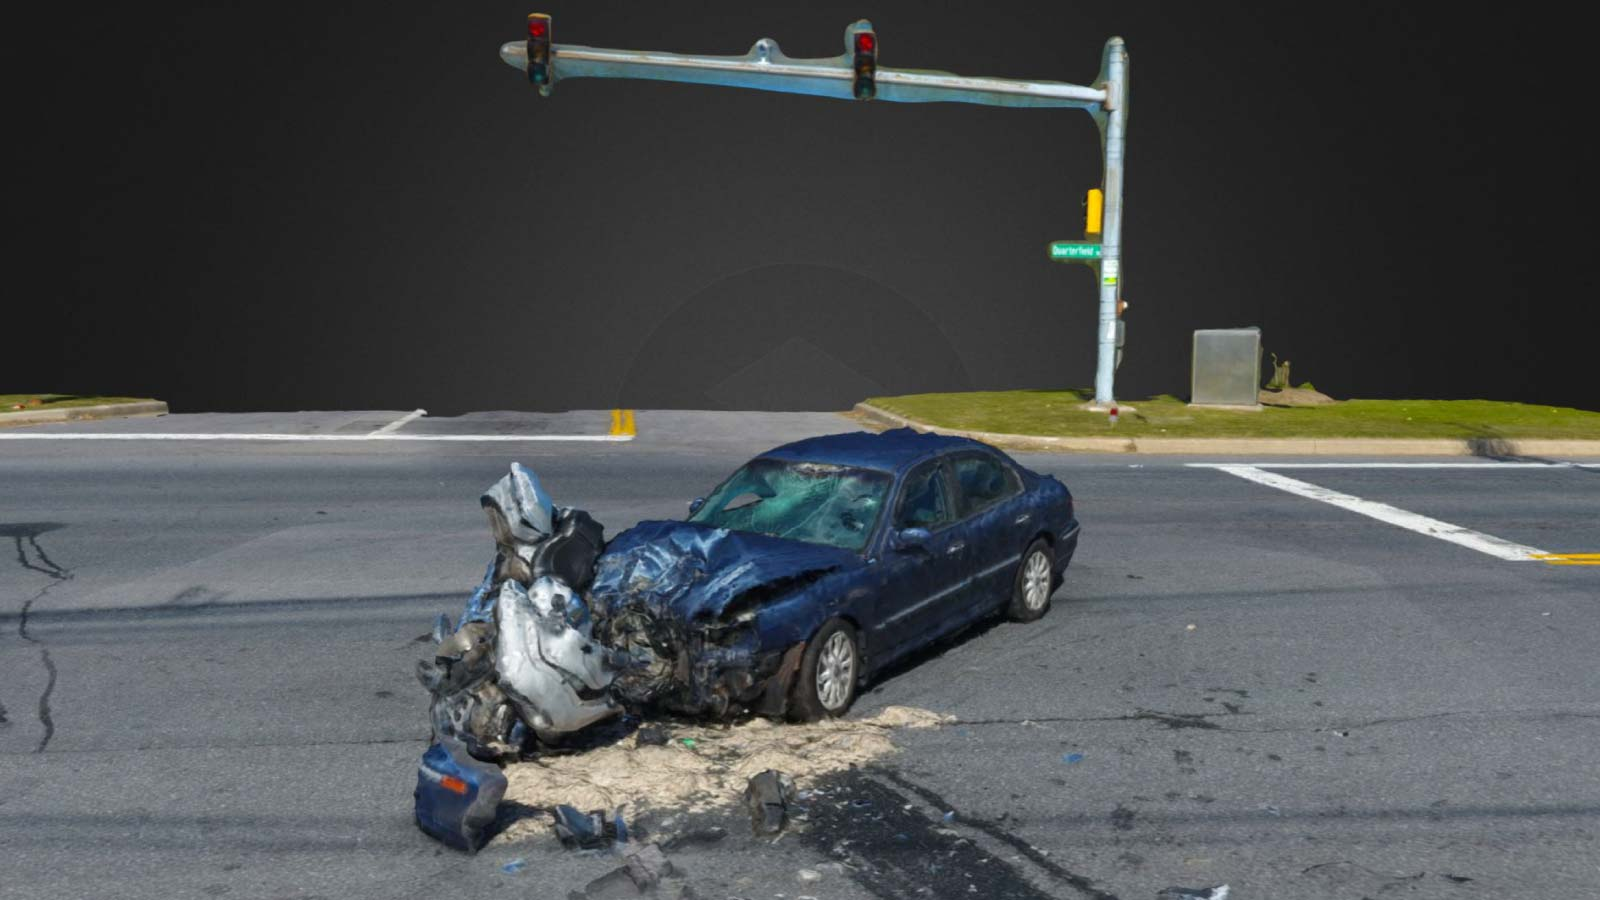 Revisit every accident or crime scene in 3D models and use the data to improve public safety